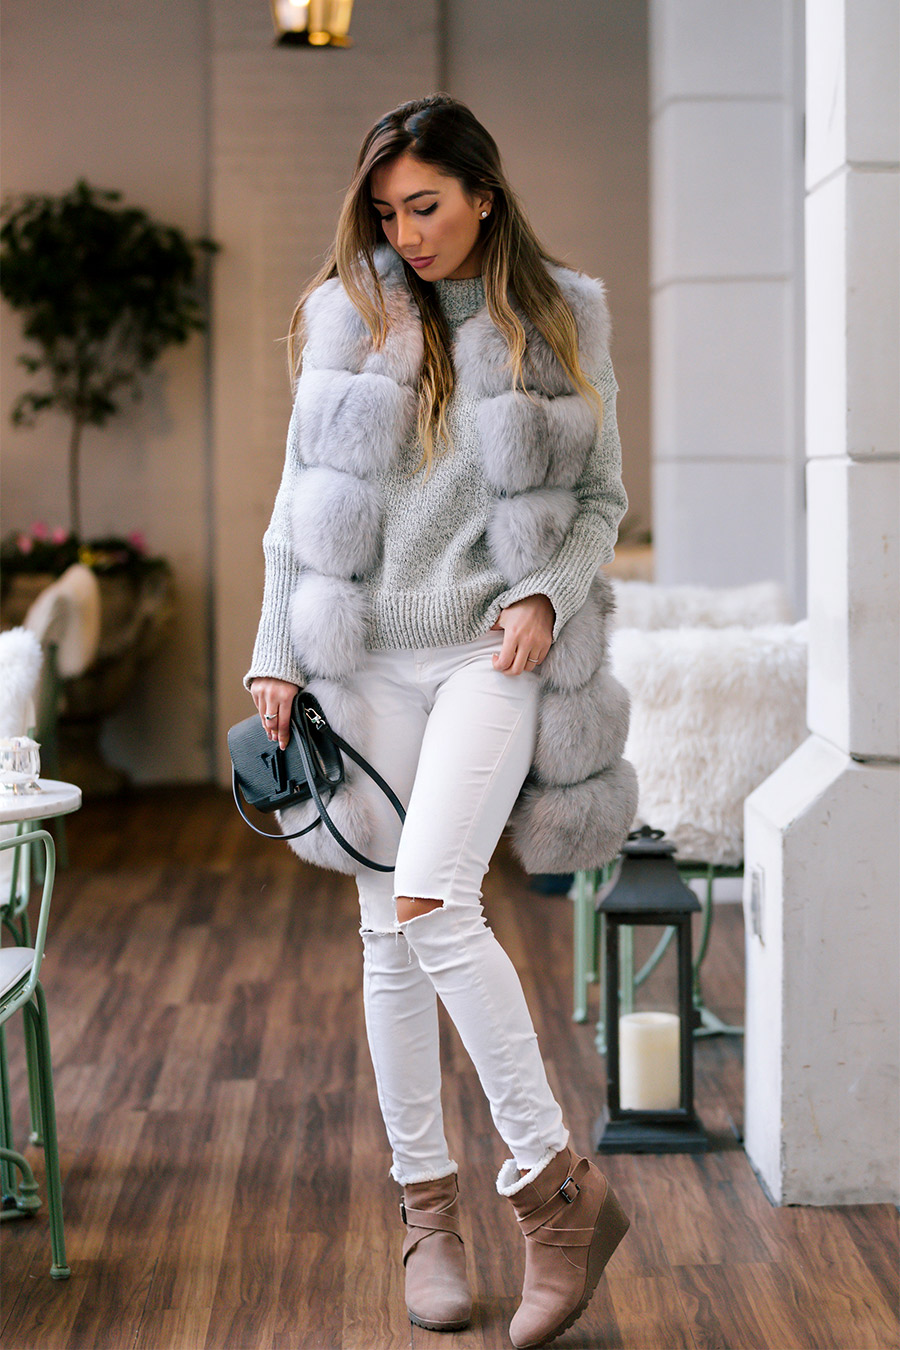 Street style New York, winter 2017. Winter cozy fur vest.